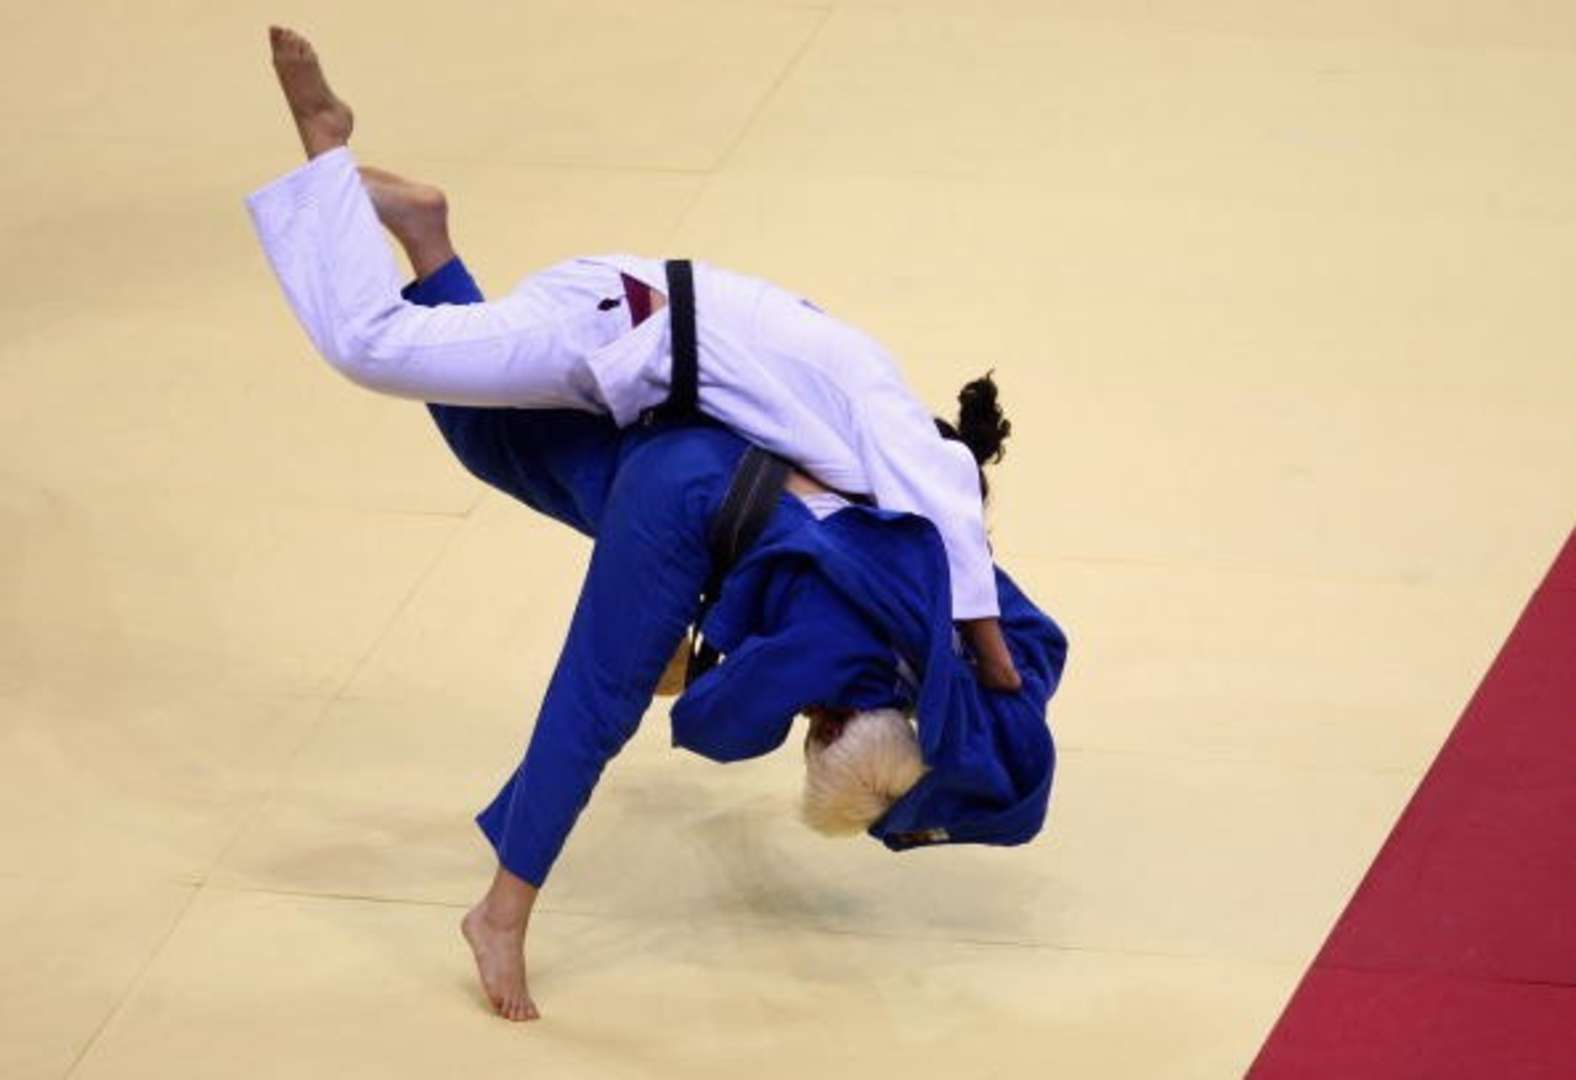 International Champions Cup 2020 Calendrier.Ibsa Judo Announces 2019 And 2020 Competition Calendar Ijf Org